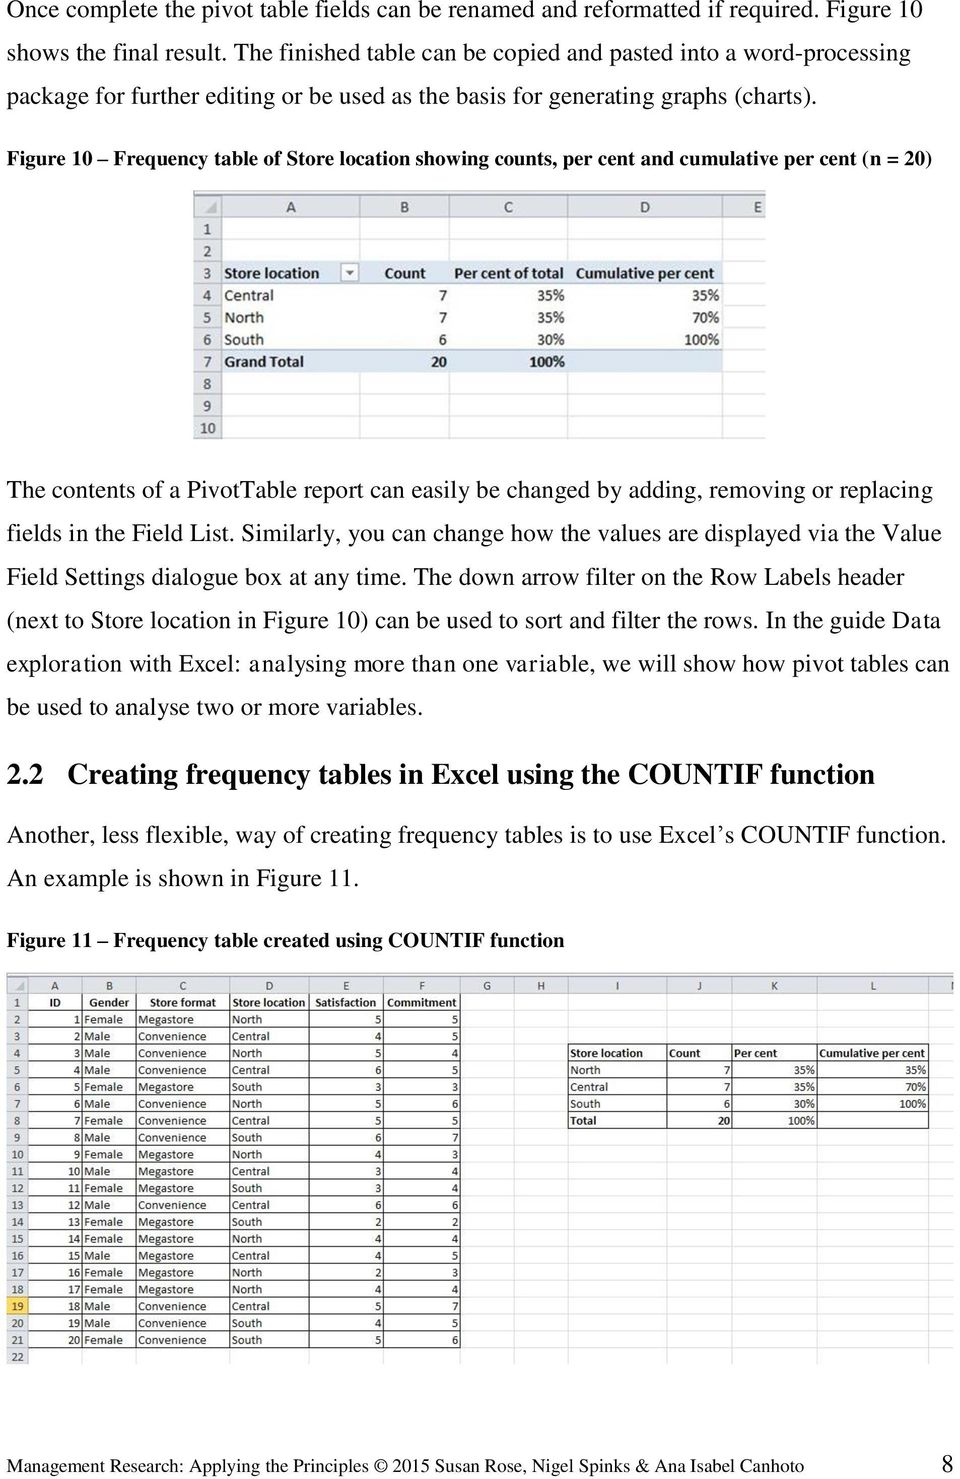 Figure 10 Frequency table of Store location showing counts, per cent and cumulative per cent (n = 20) The contents of a PivotTable report can easily be changed by adding, removing or replacing fields